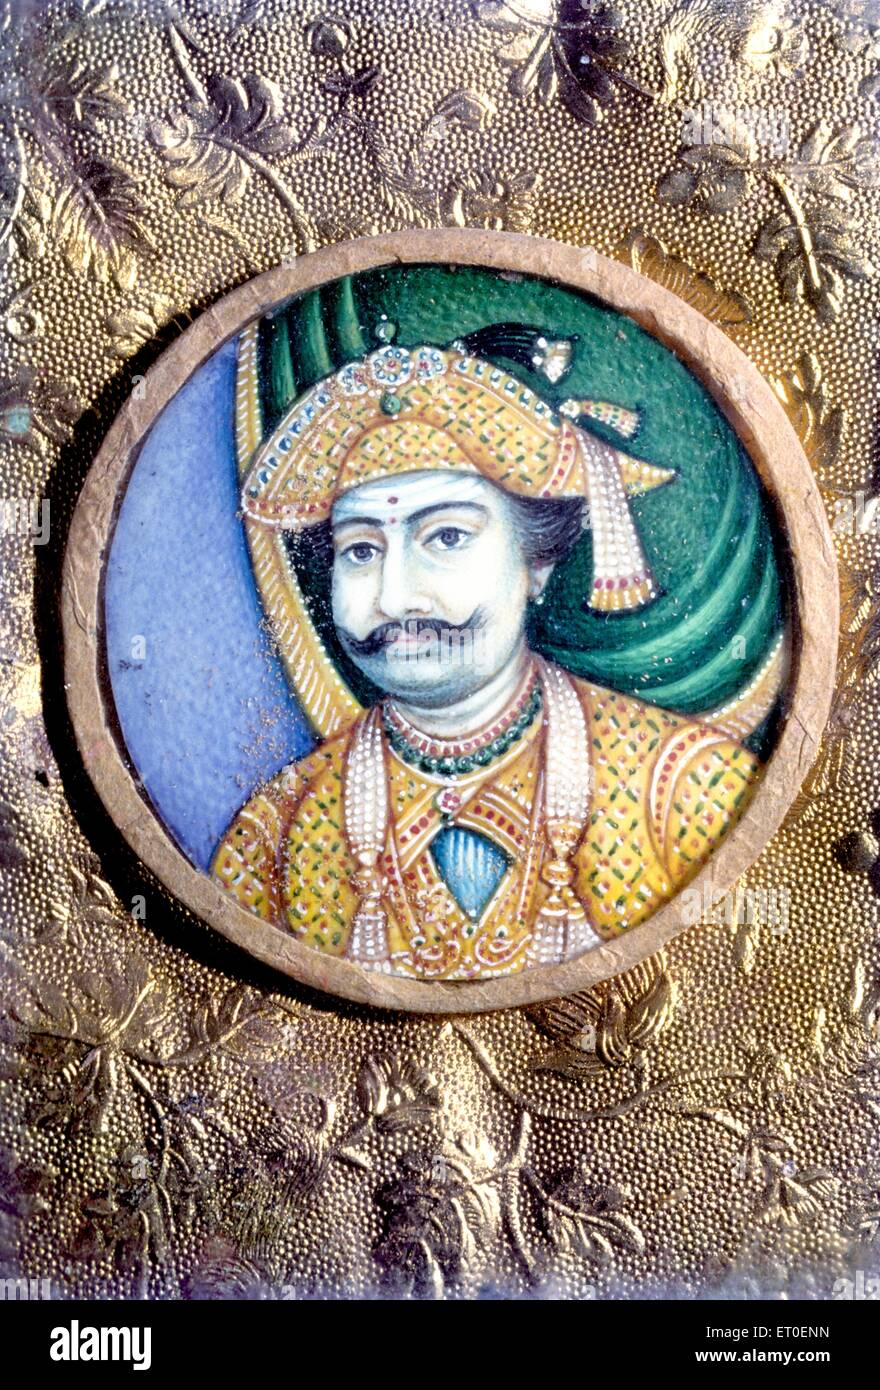 Painting of maratha king on ivory ; Tanjore ; Thanjavur ; Tamil Nadu ; India - Stock Image